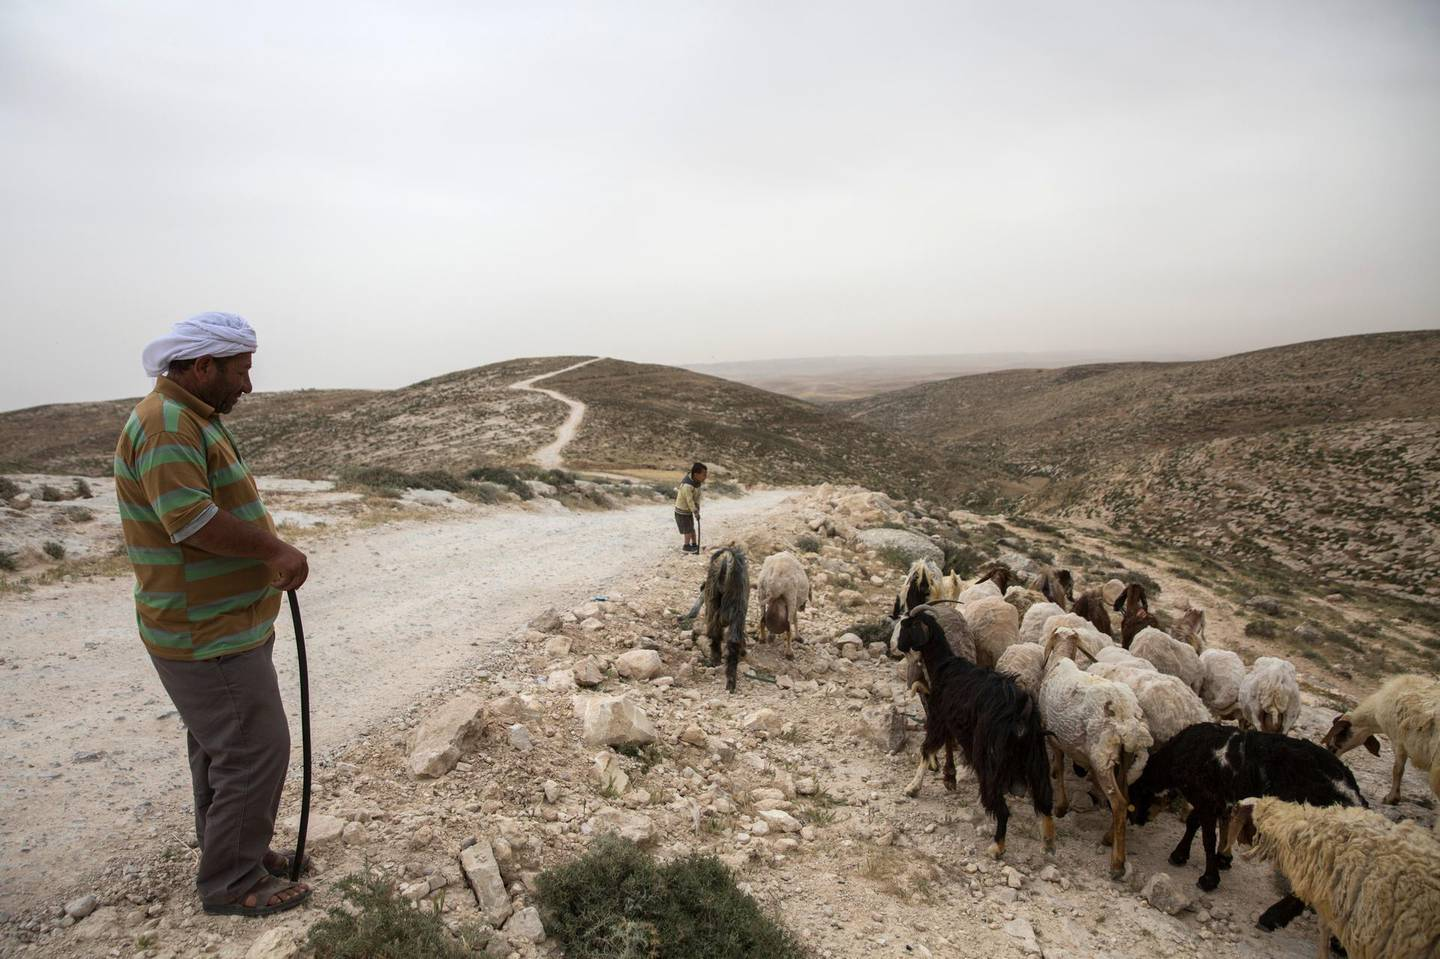 Palestinian shepherd Yasser Yassir Hamamdi,48, with his son as they take their flock of sheep and goats out to graze by the isolated village of Arakeez in the West Bank's south Hebron Hills .(Photo by Heidi Levine for The National